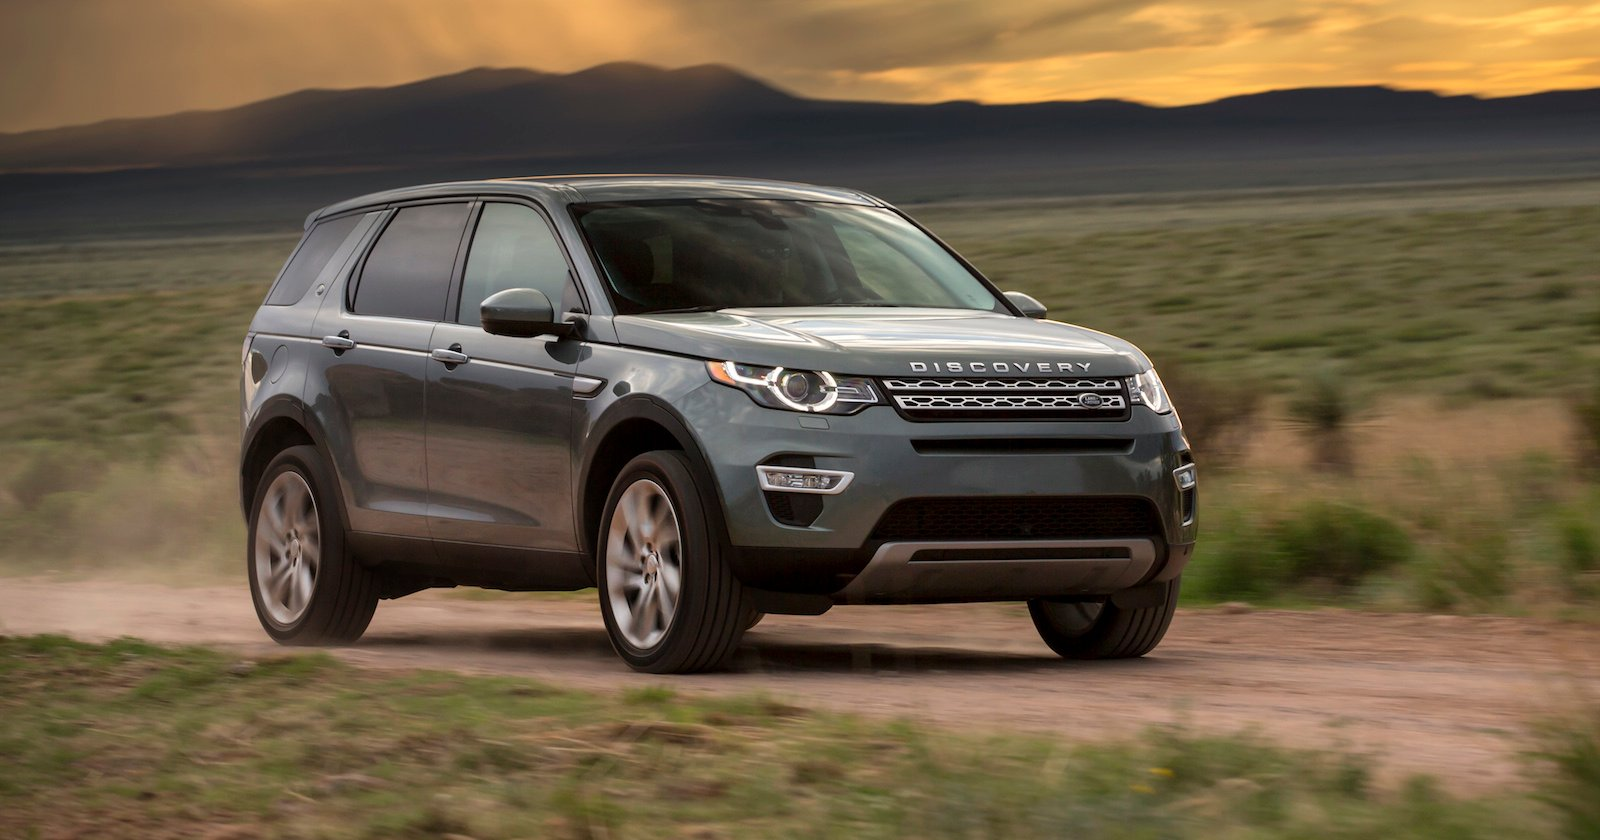 2015 land rover discovery sport australian specifications revealed photos 1 of 11. Black Bedroom Furniture Sets. Home Design Ideas